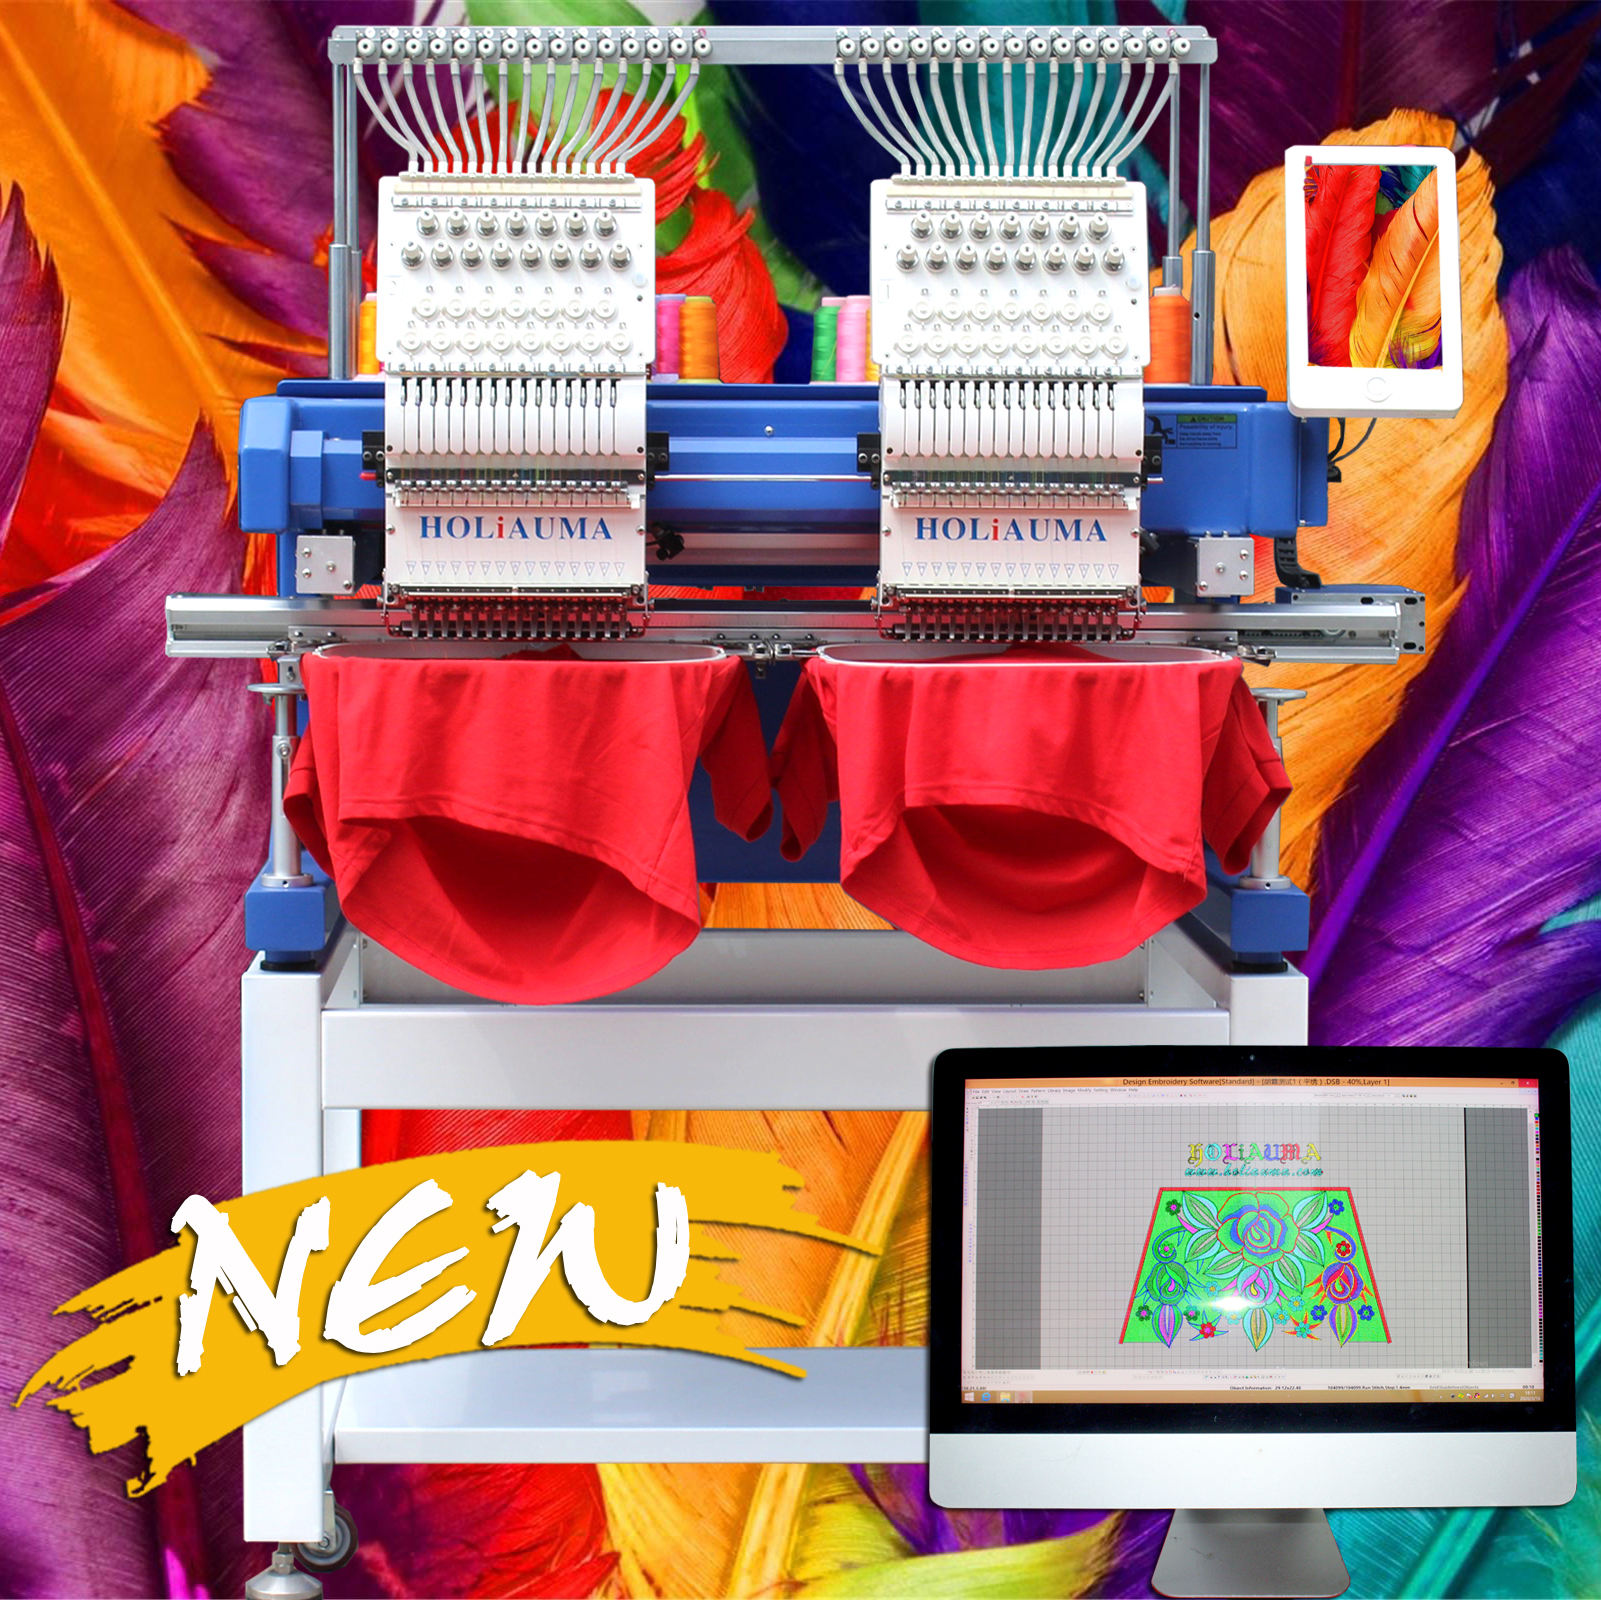 10 years service !!!HOLiAUMA Newest embroidery machines computerized for sale cheaper tajima swf embroidery machine price